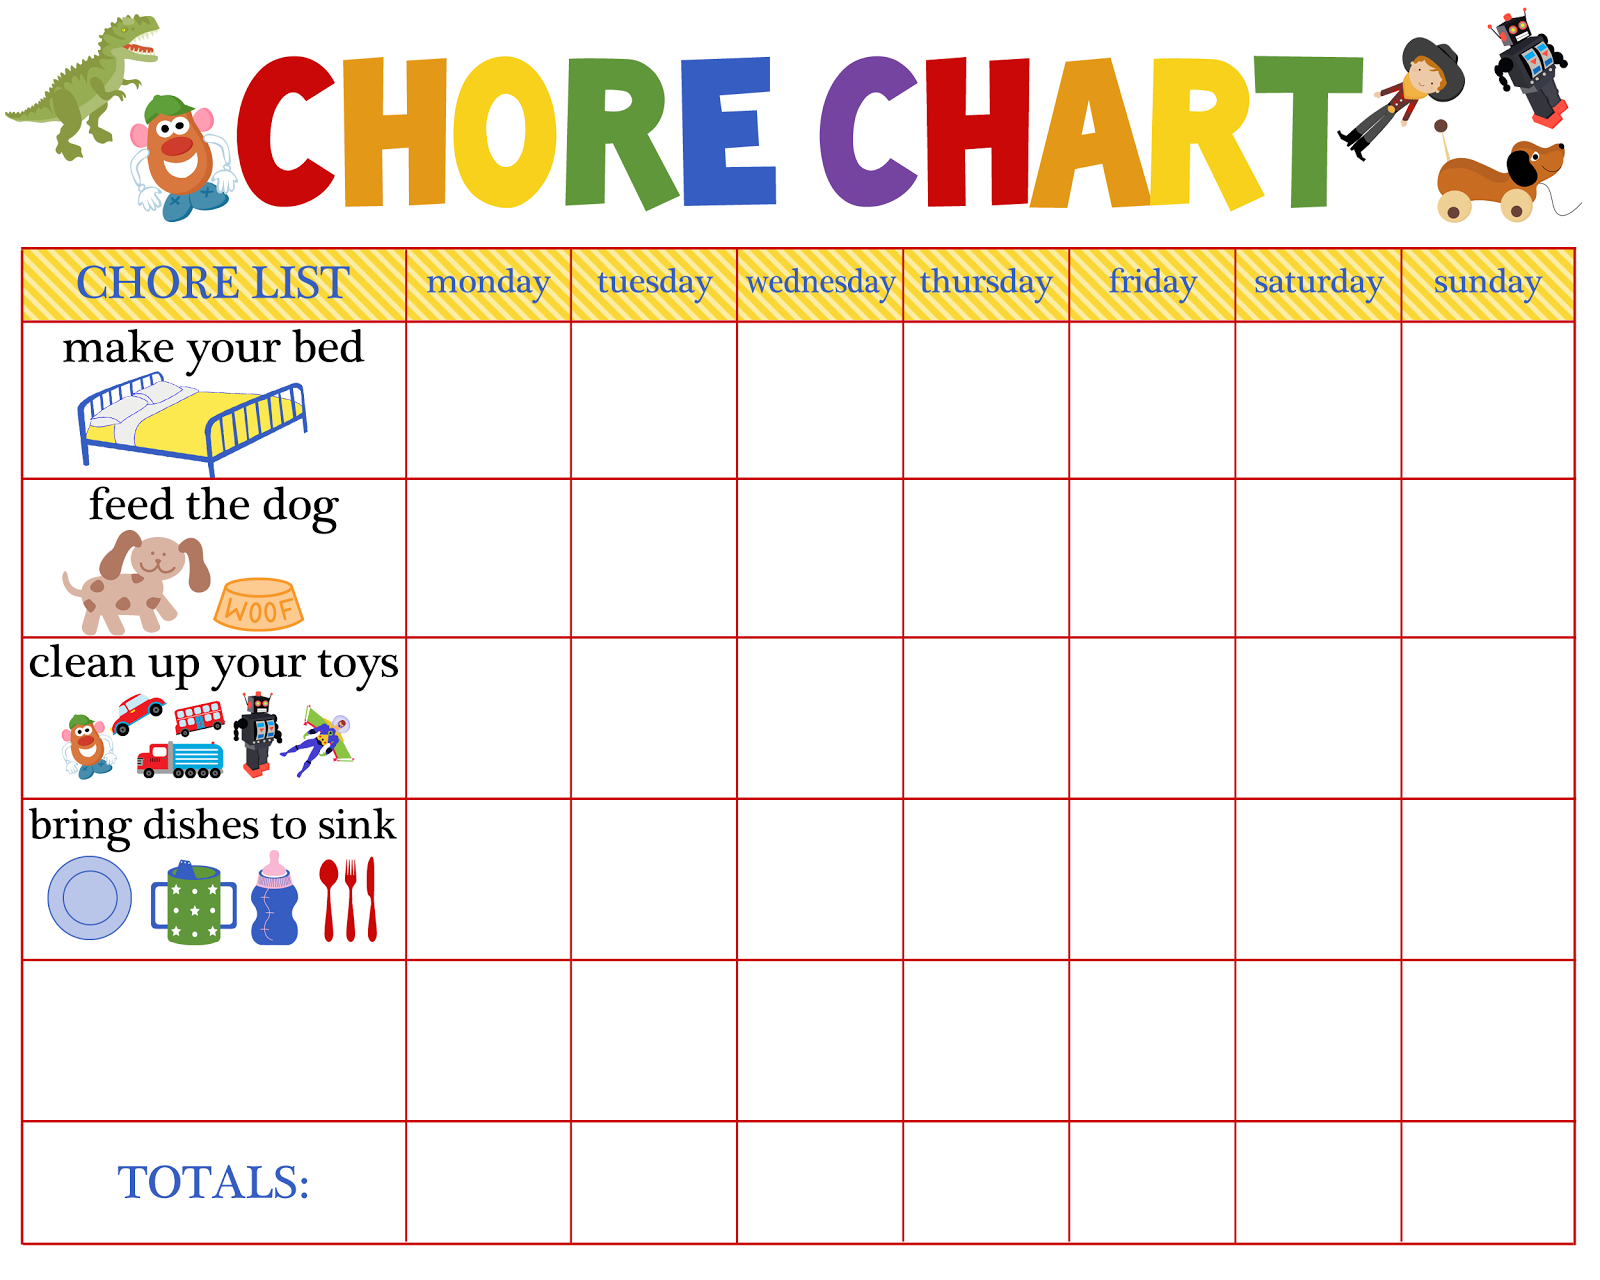 image regarding Printable Chore Chart for 5 Year Old called 5 Yr Previous Profit Chore Chart Absolutely free Educative Printable